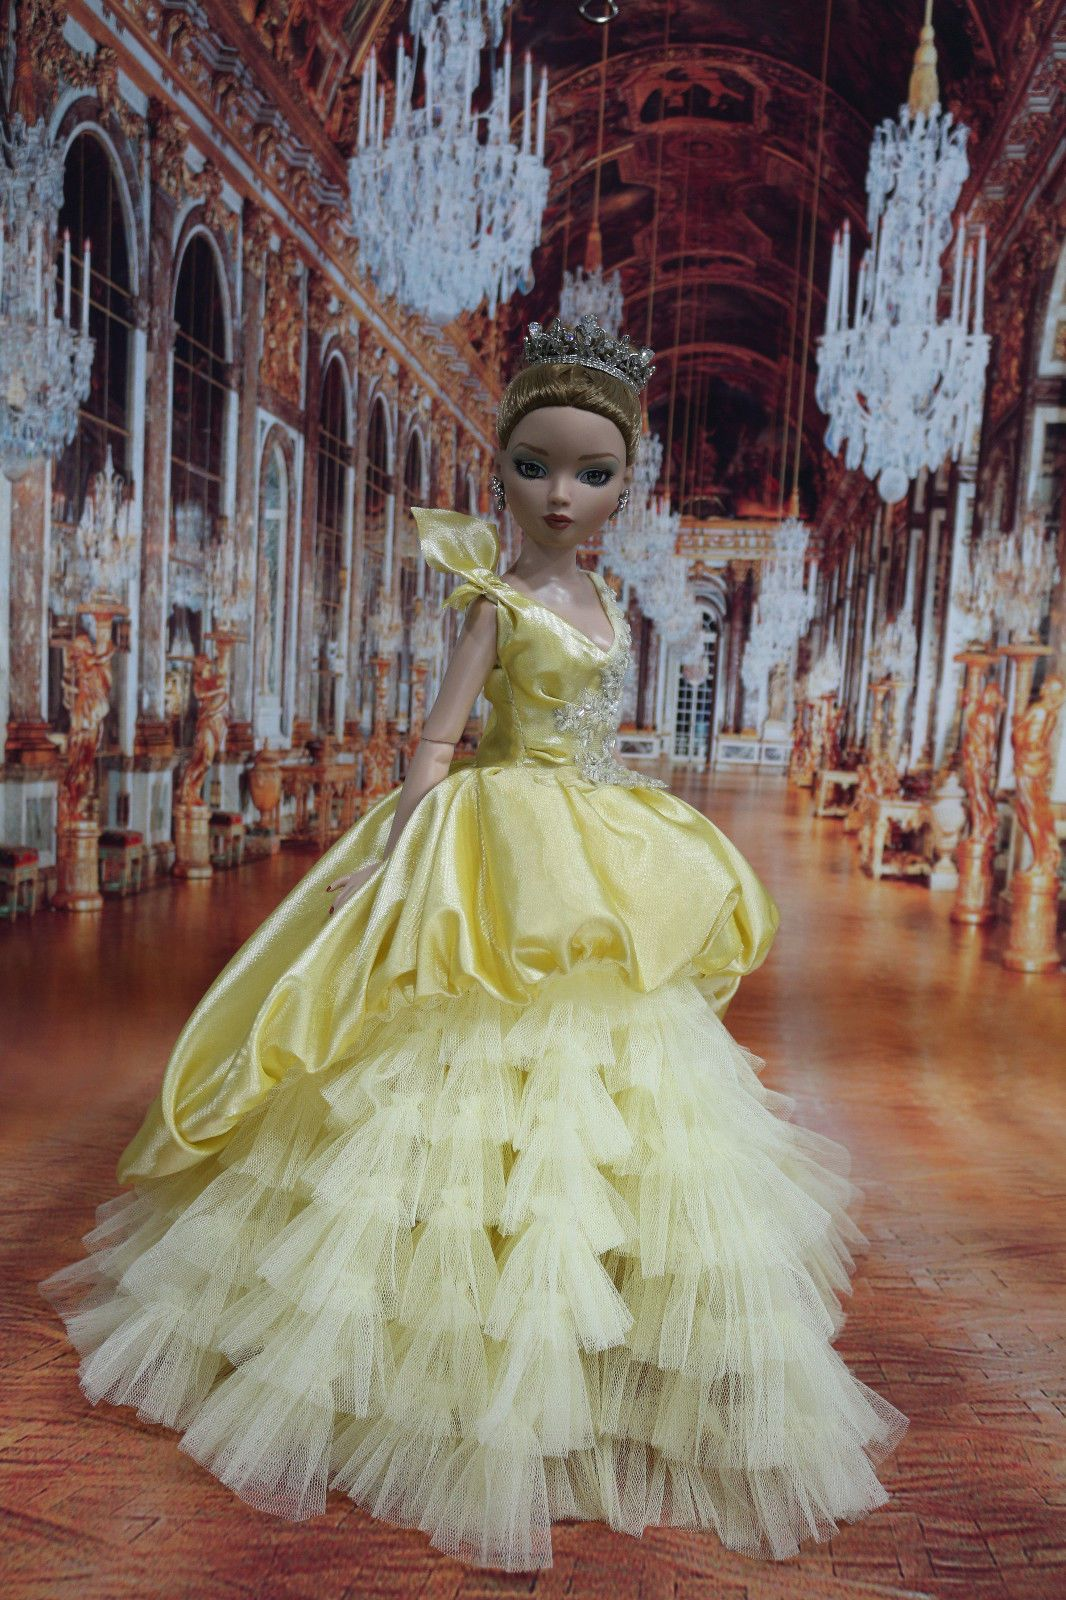 US $109.99 New in Dolls & Bears, Dolls, Clothes & Accessories